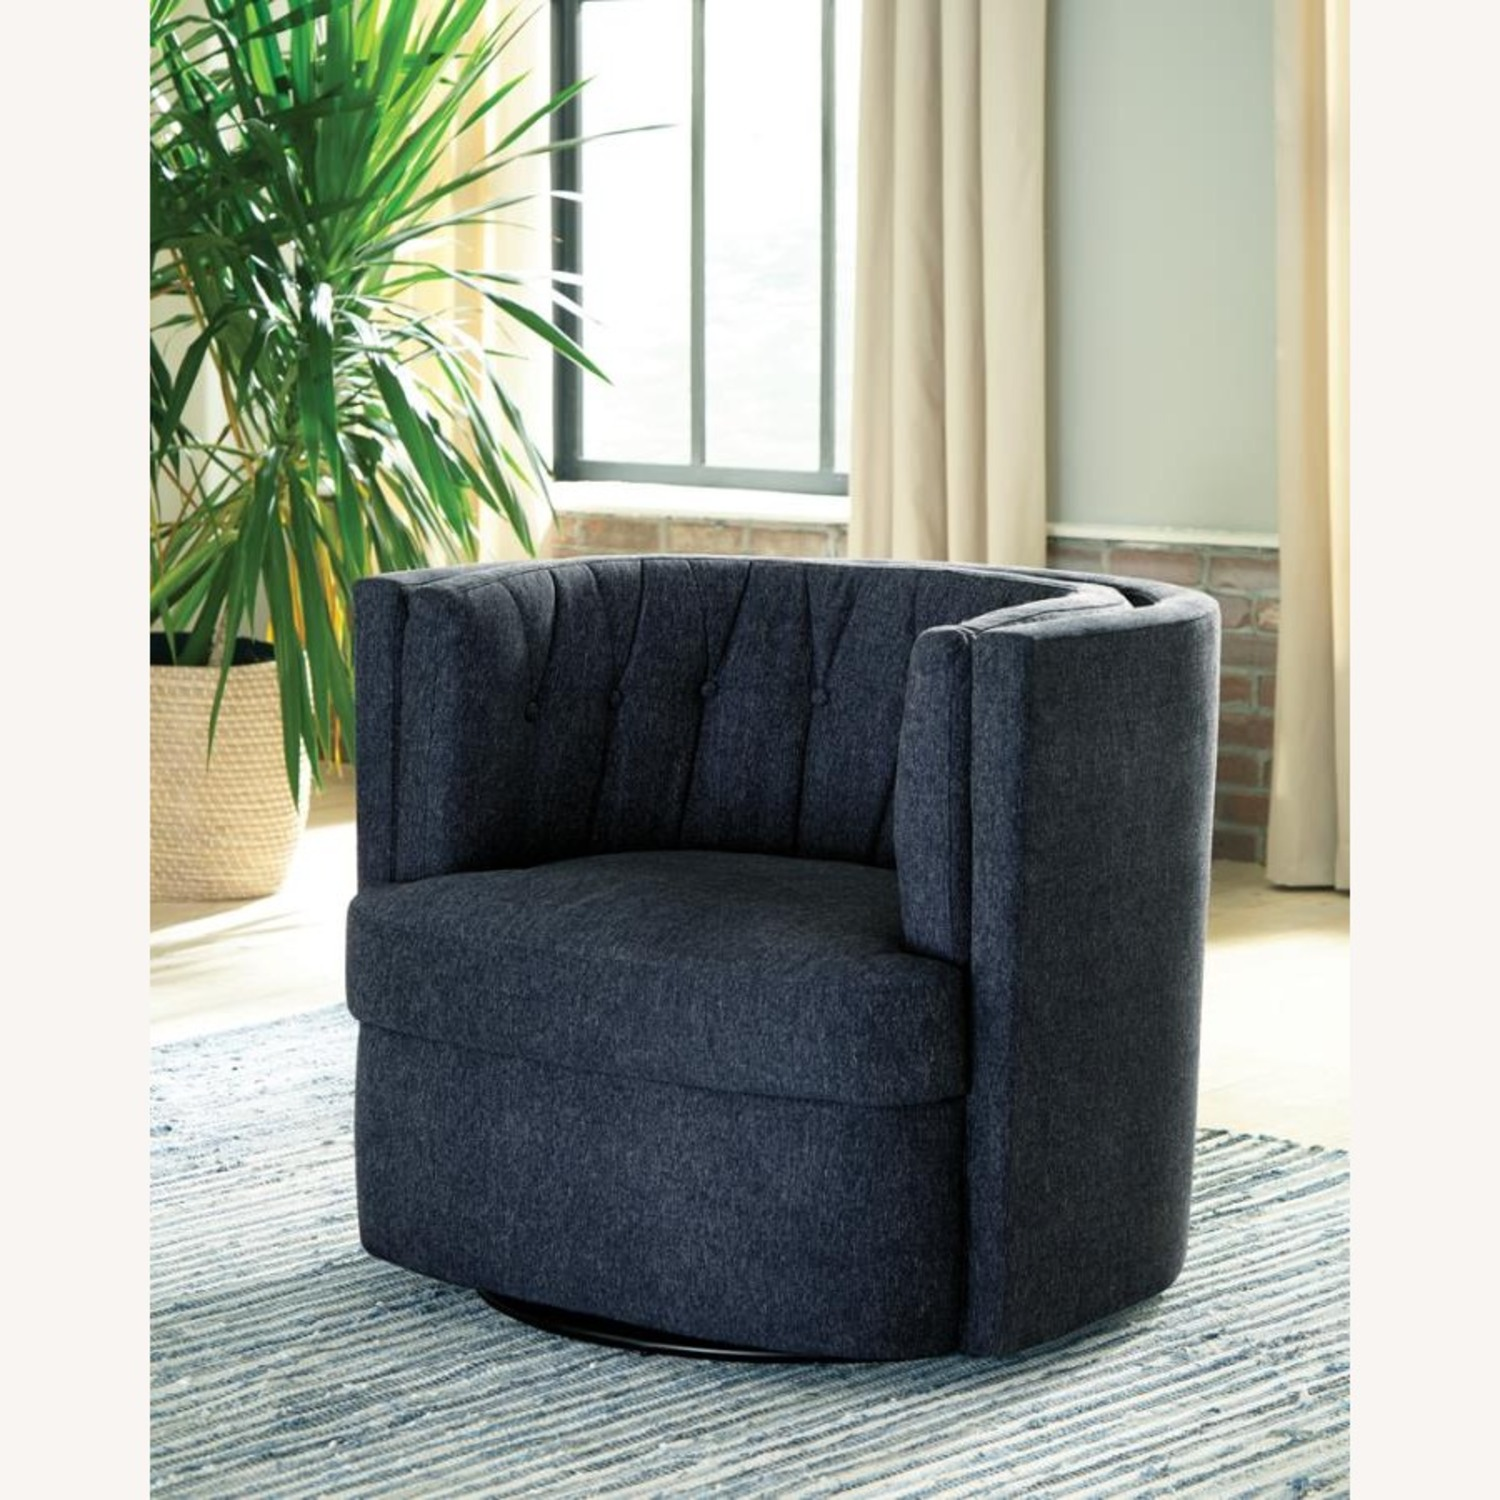 Swivel Accent Chair In Dark Blue Low Pile Chenille - image-4